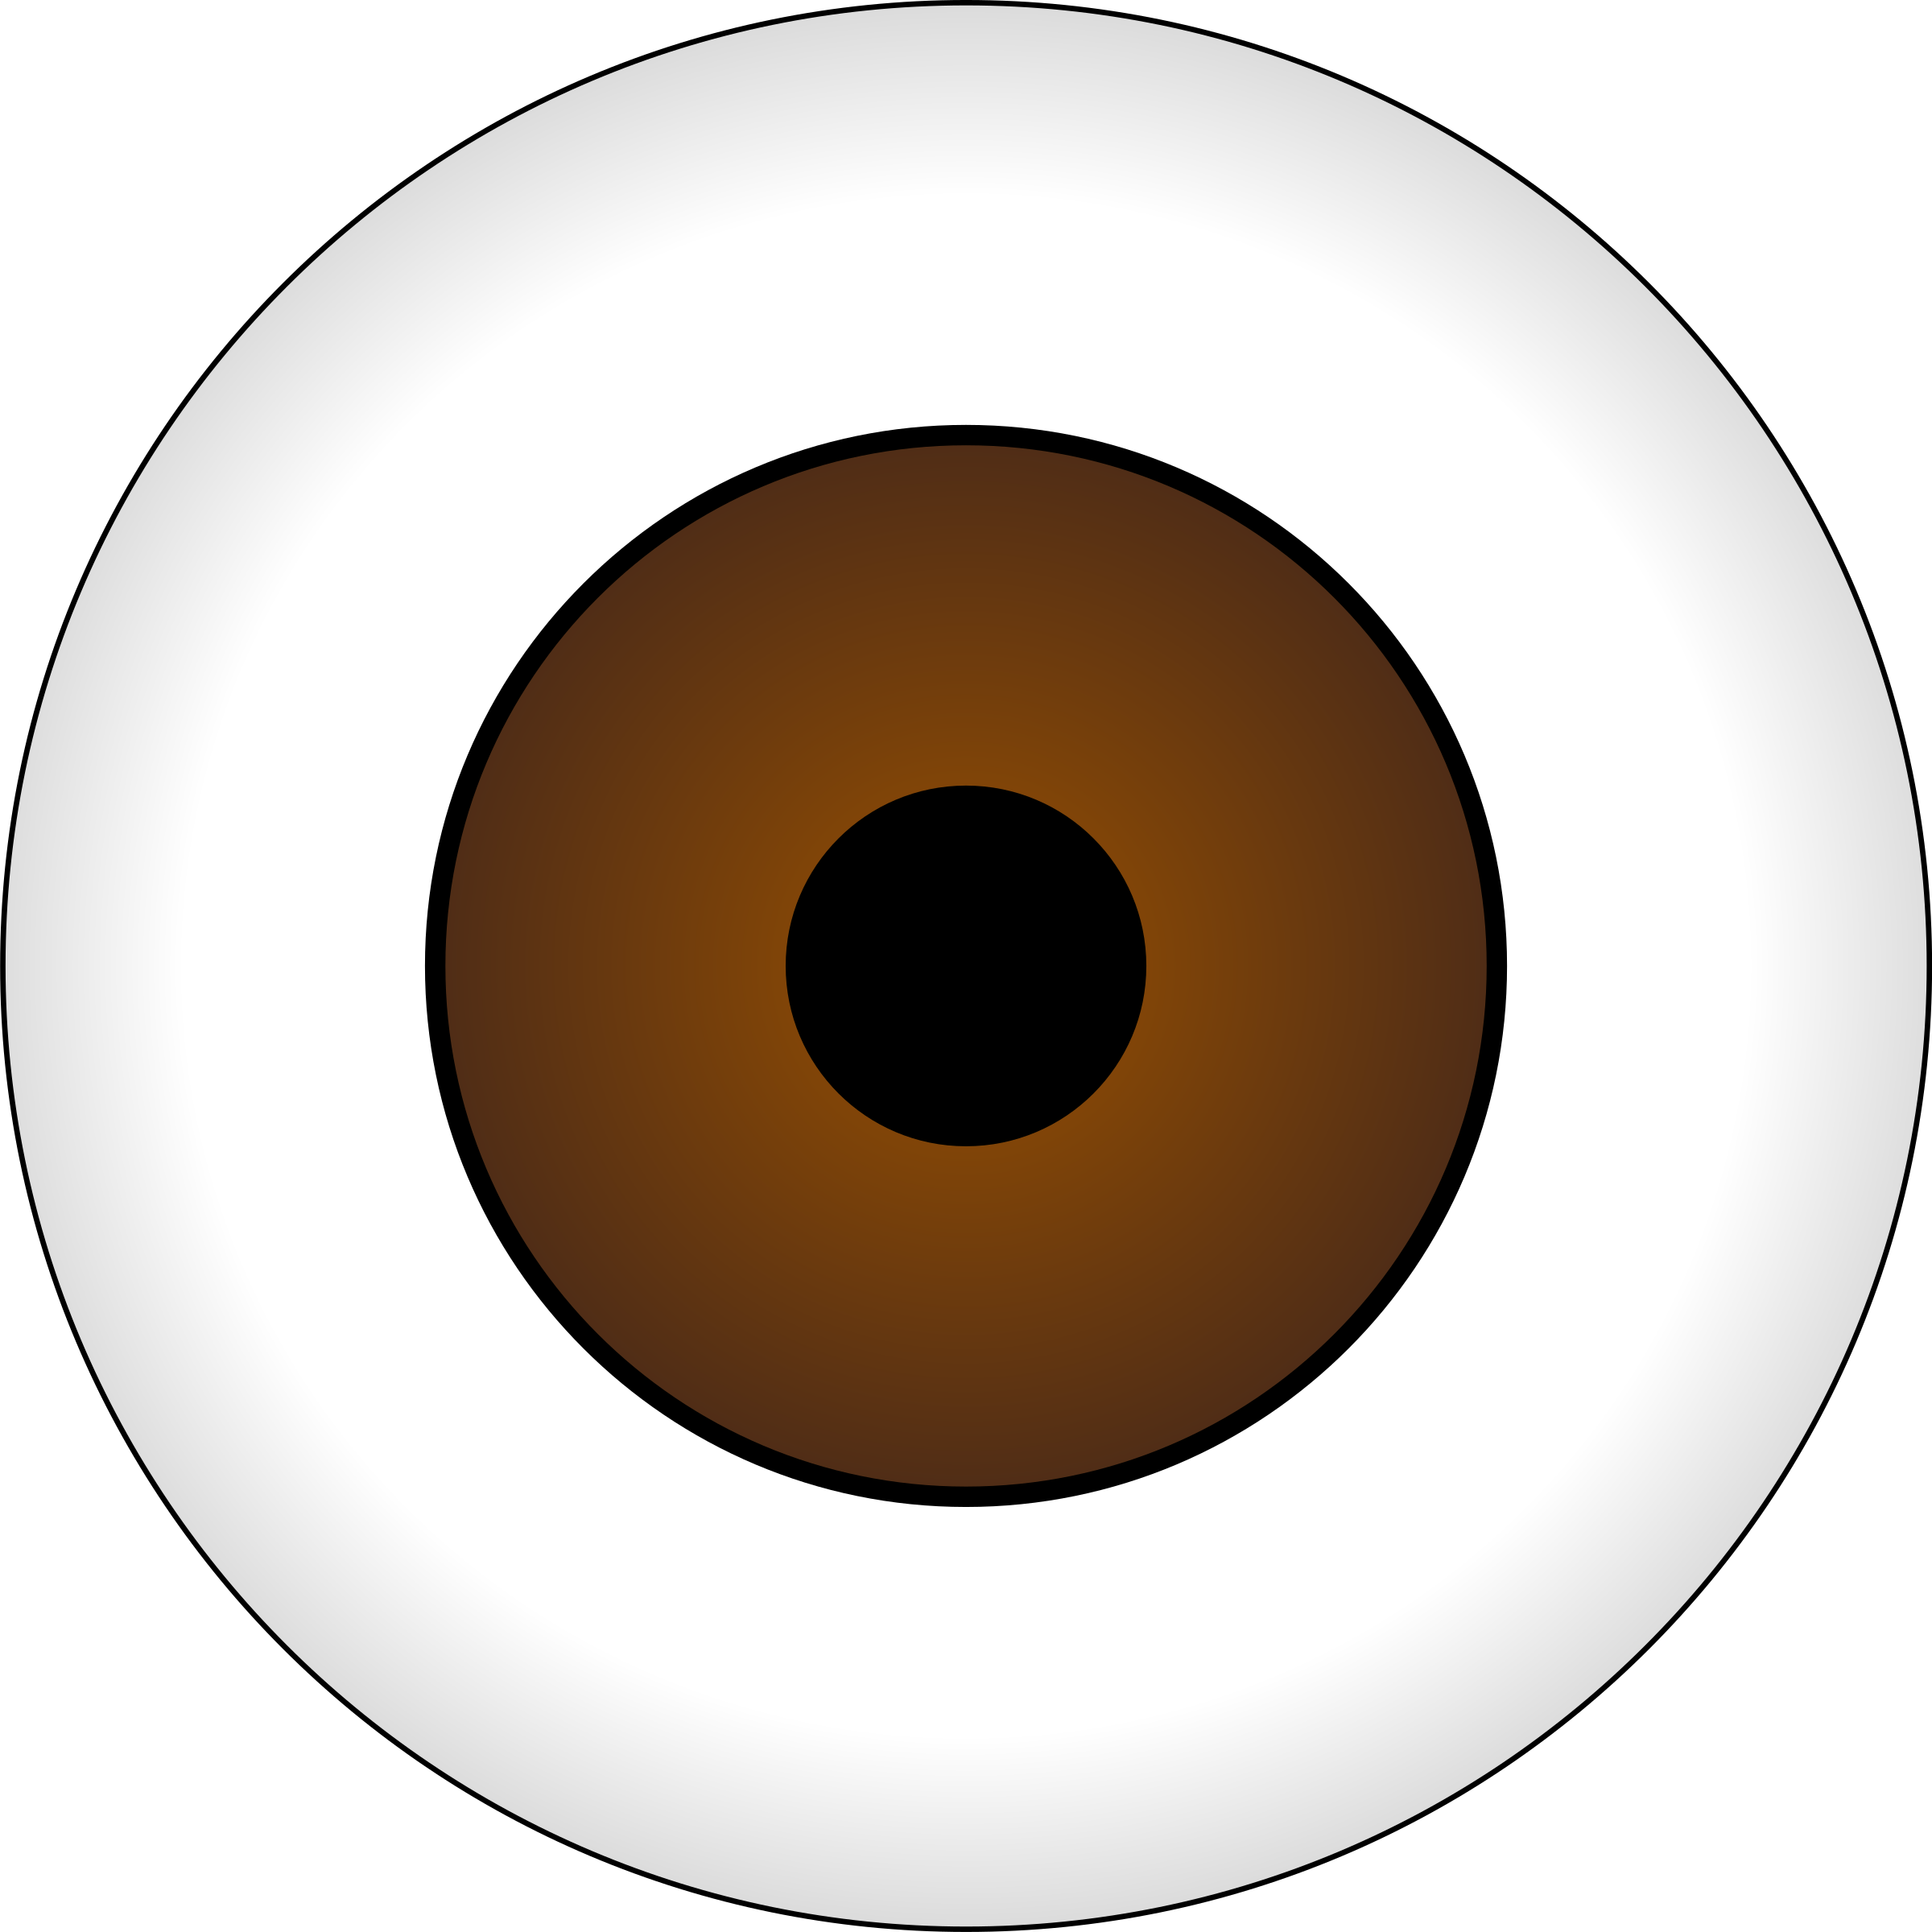 Olhos Castanhos/ Brown Eye by tonlima